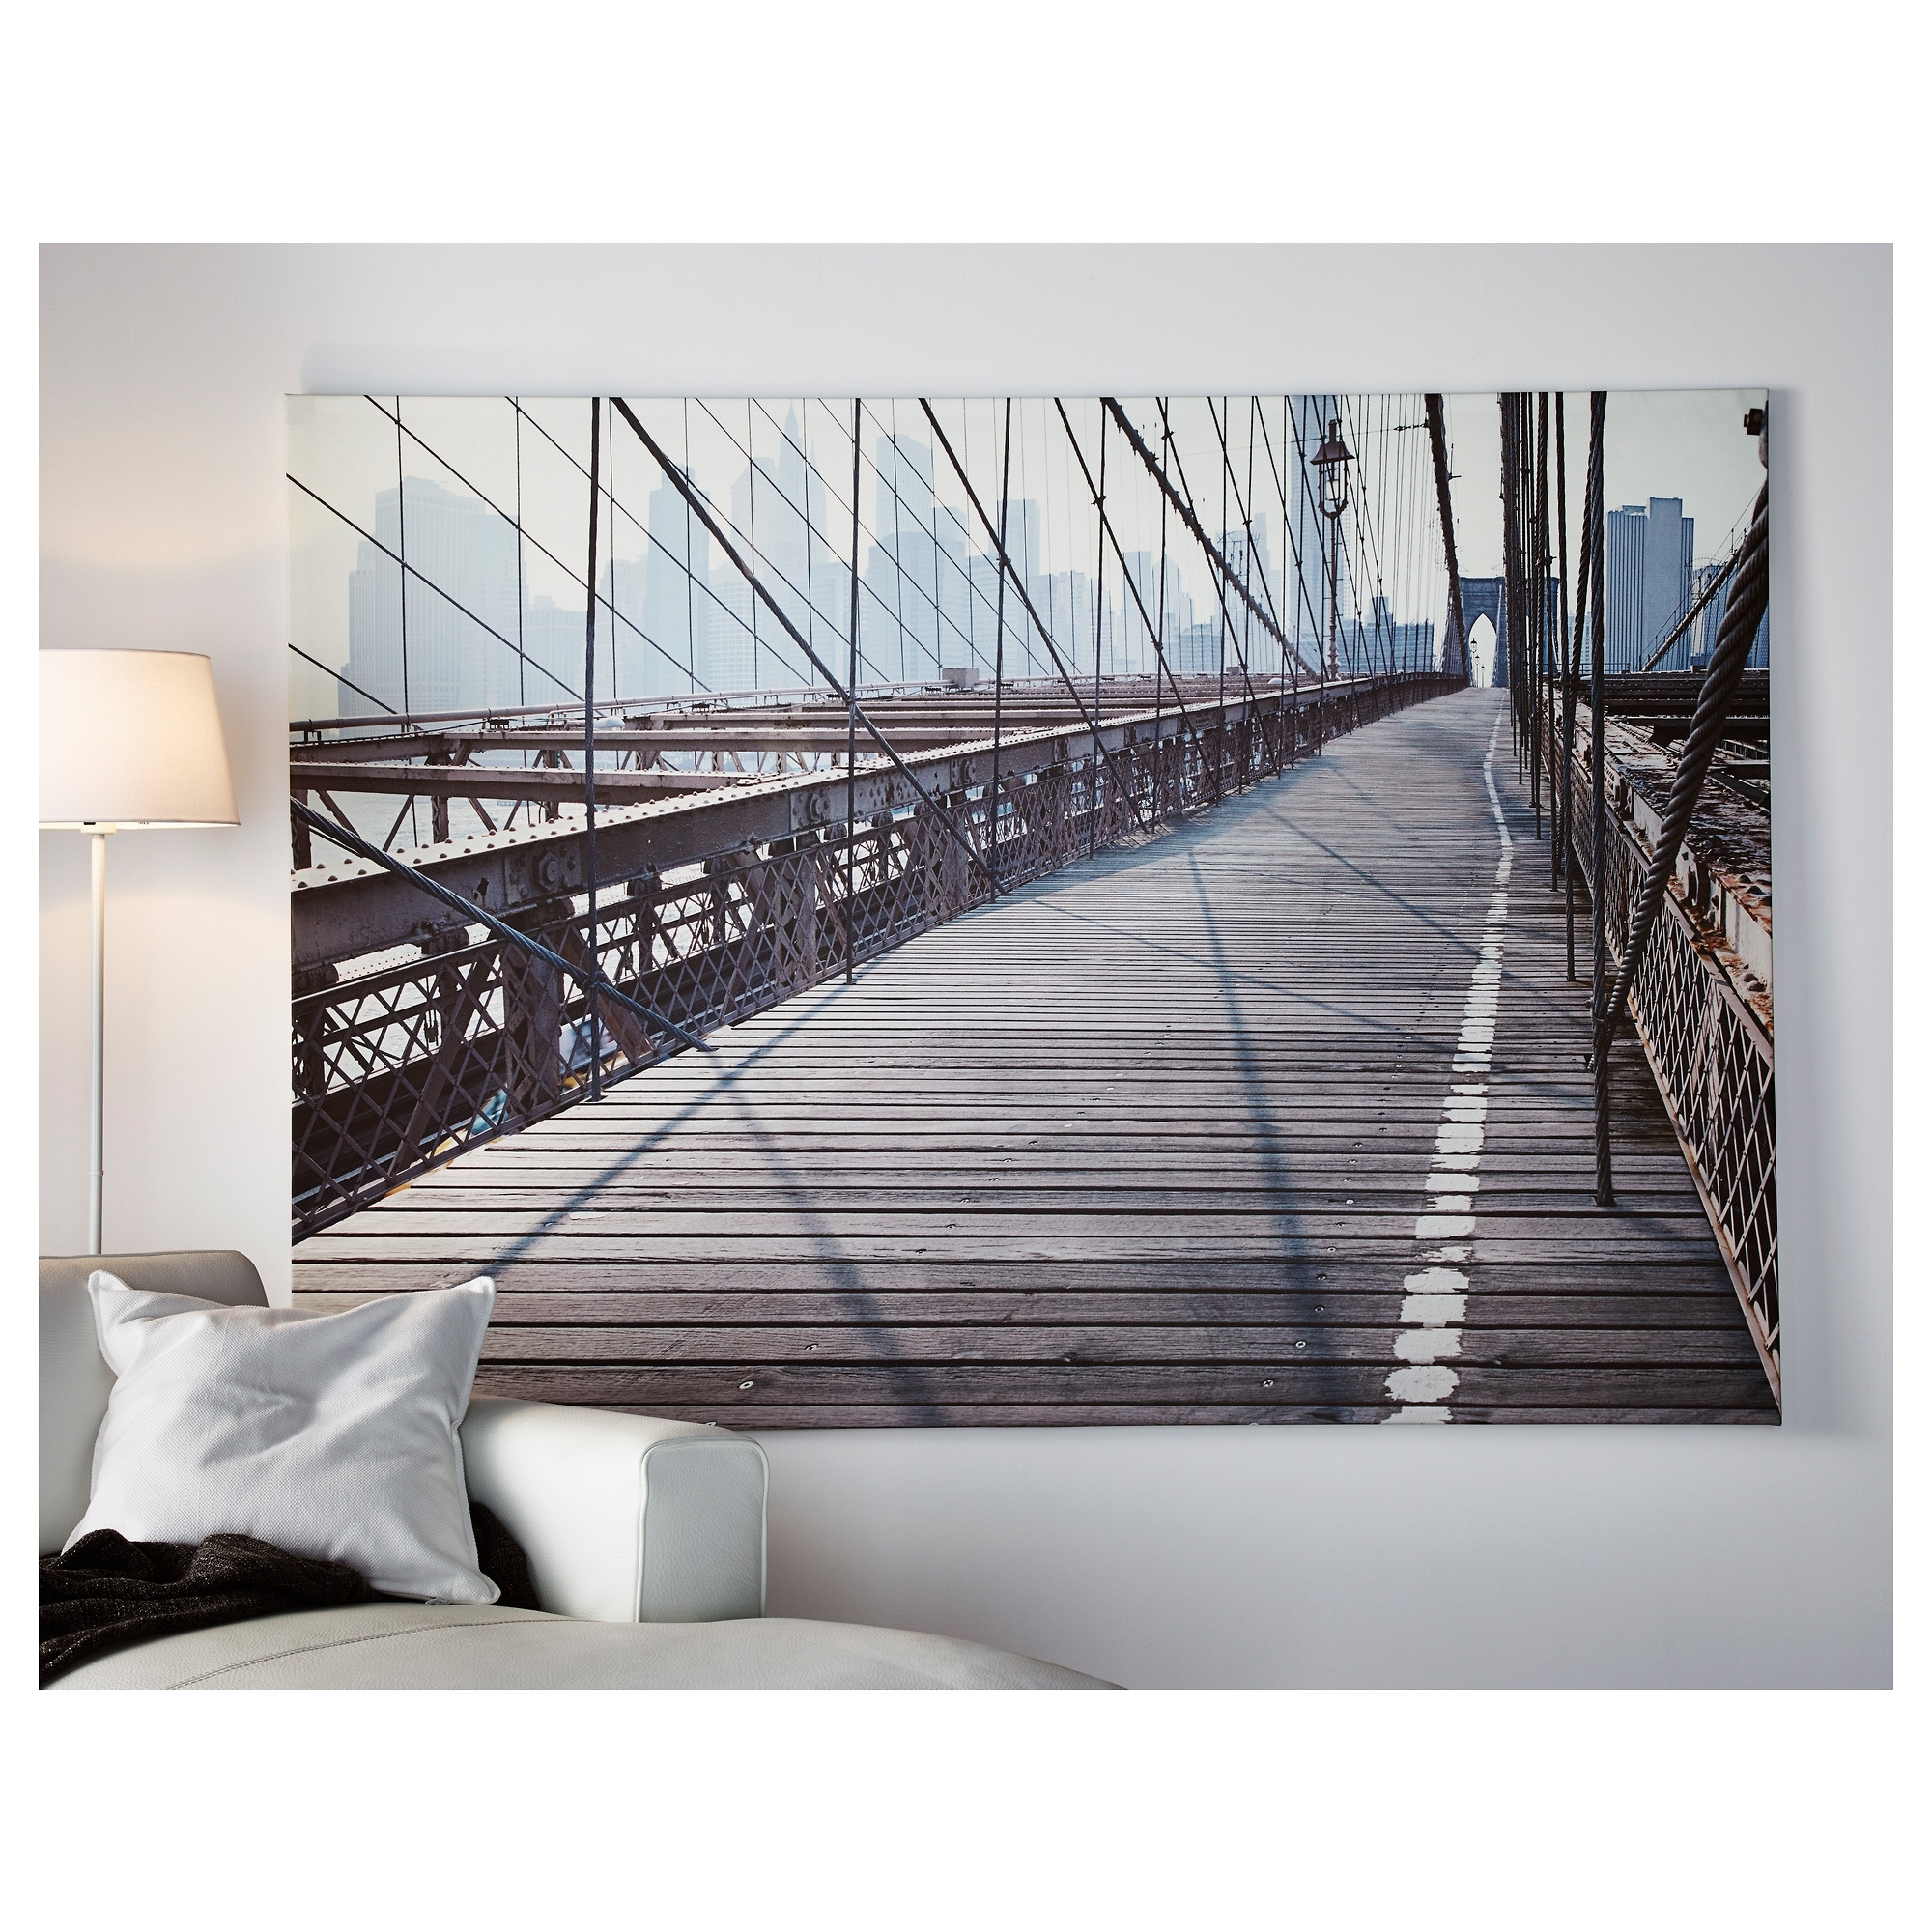 40 Super Design Ideas Ikea Wall Art Canvas | Panfan Site For Best And Newest Ikea Canvas Wall Art (View 10 of 15)